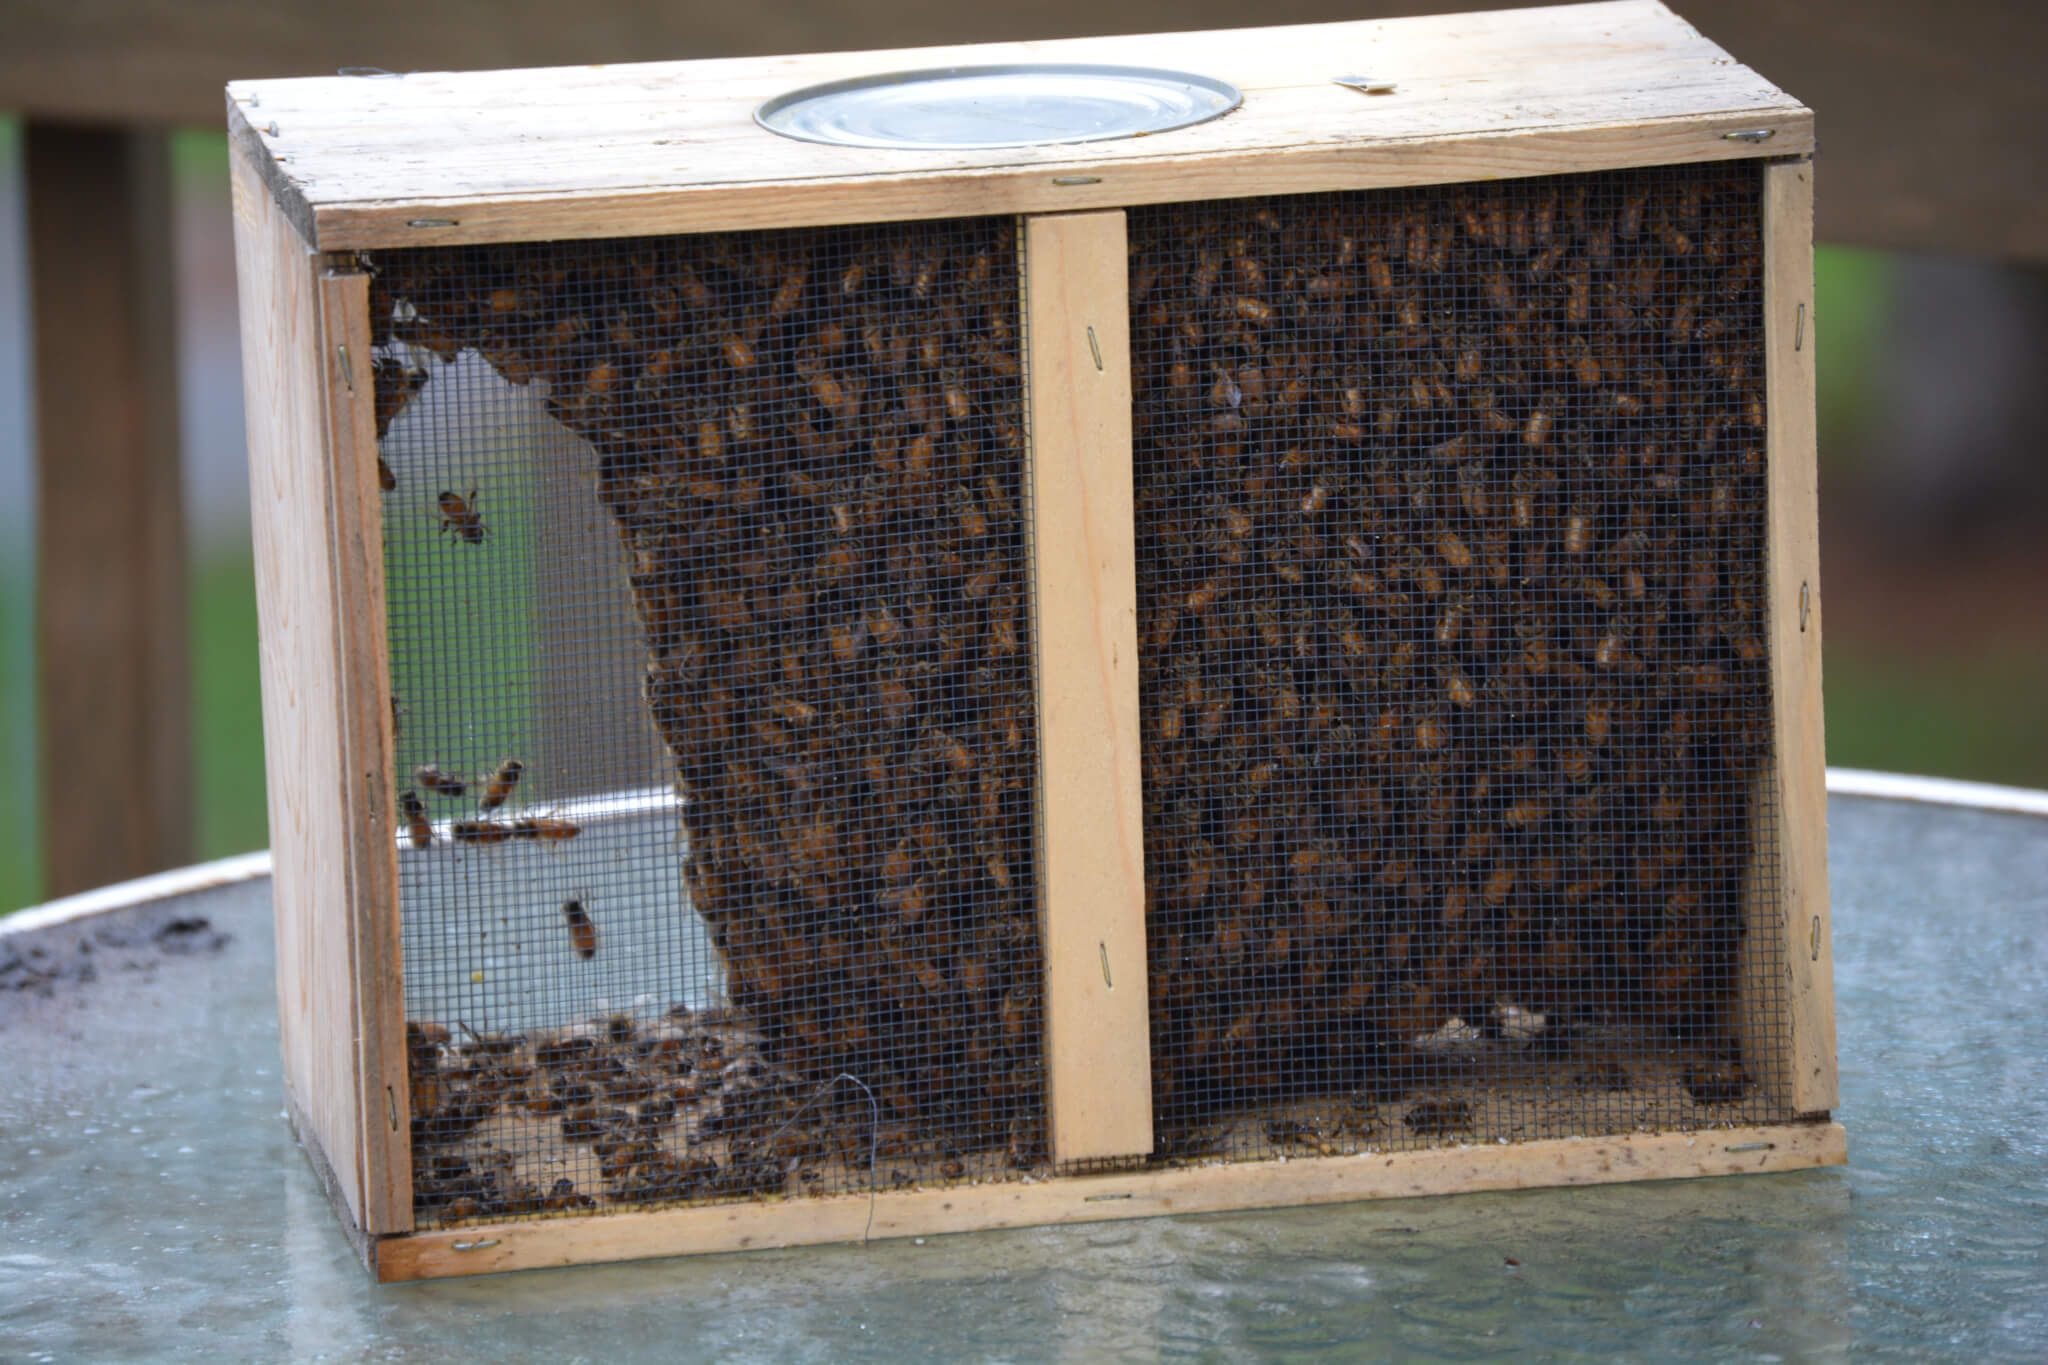 The Bees Arrive